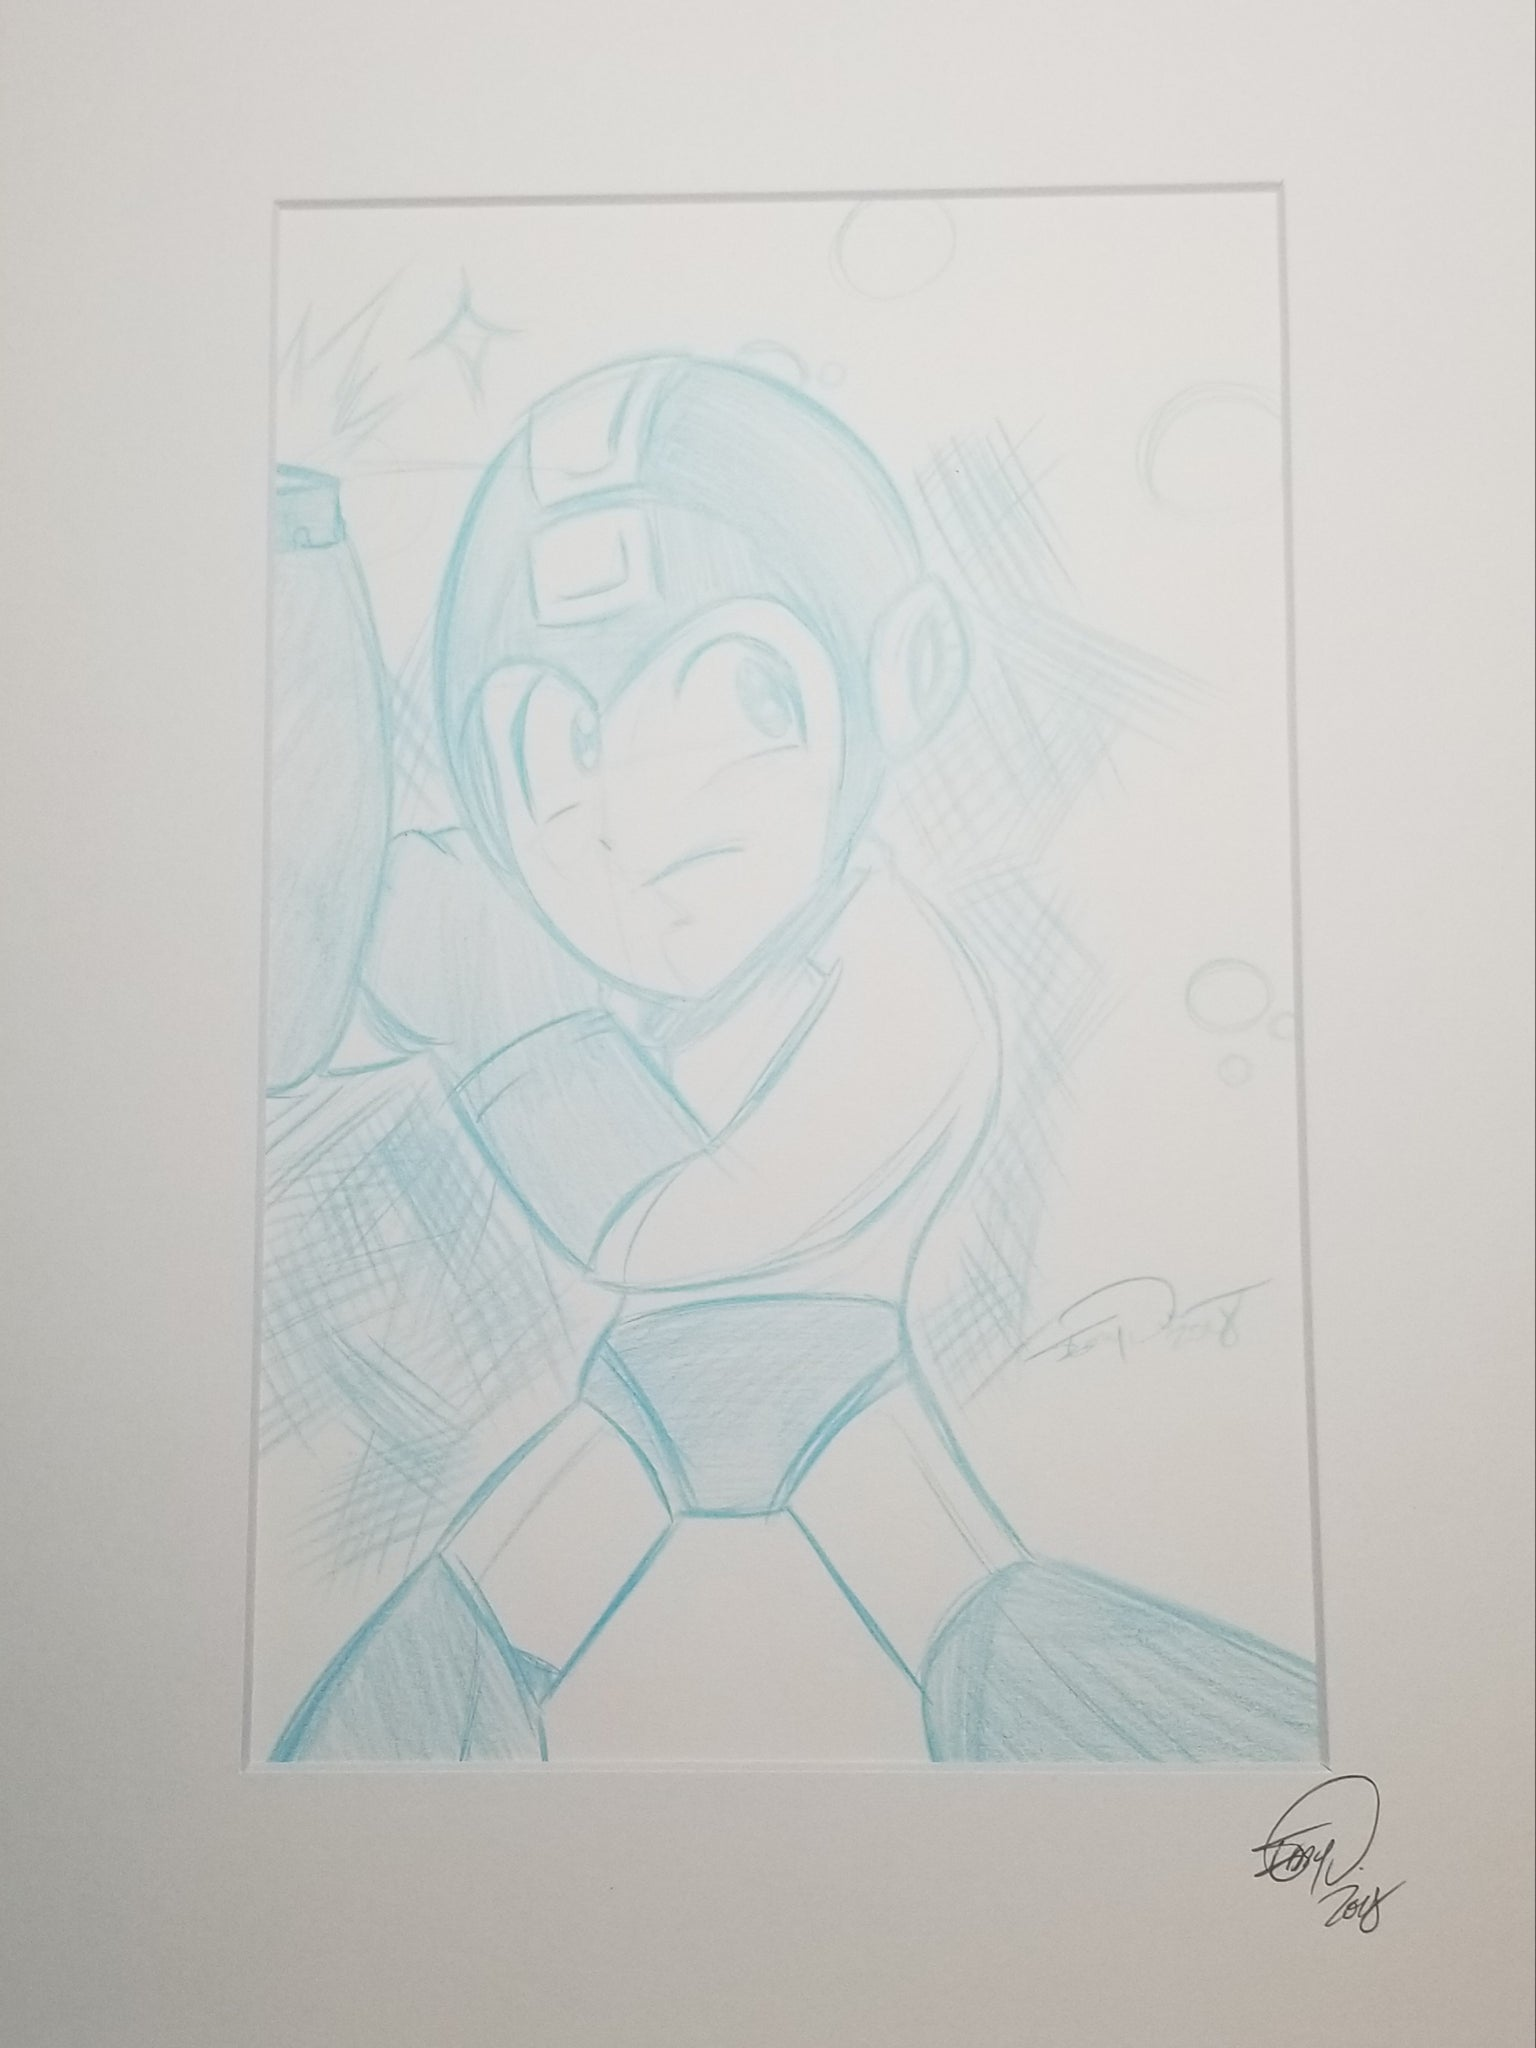 Original Art (Megaman Sketch)